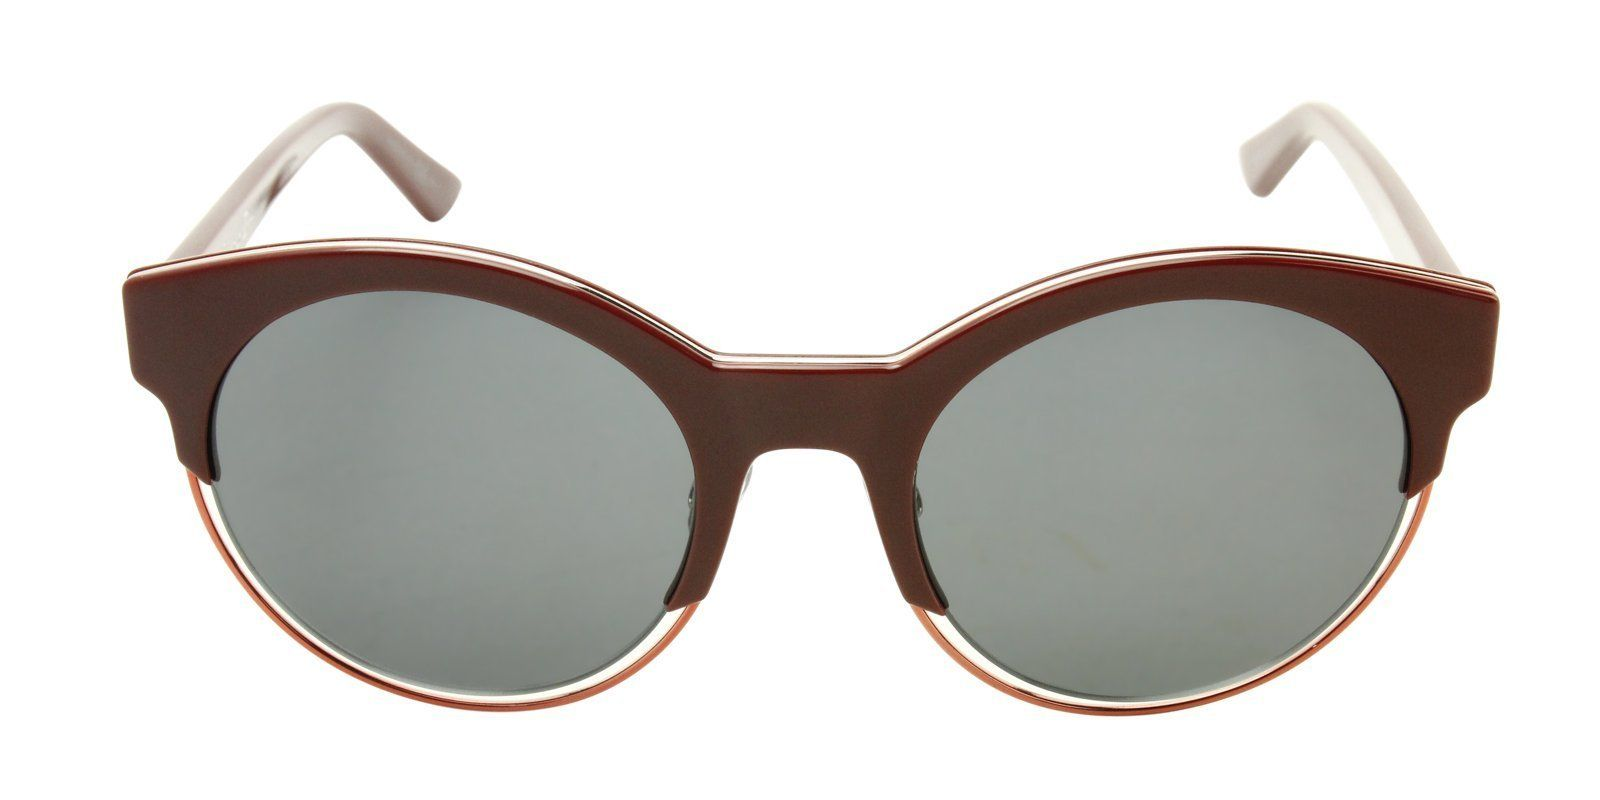 90d3a0770a1 Dior - Sideral1 Red - Gray sunglasses in 2018